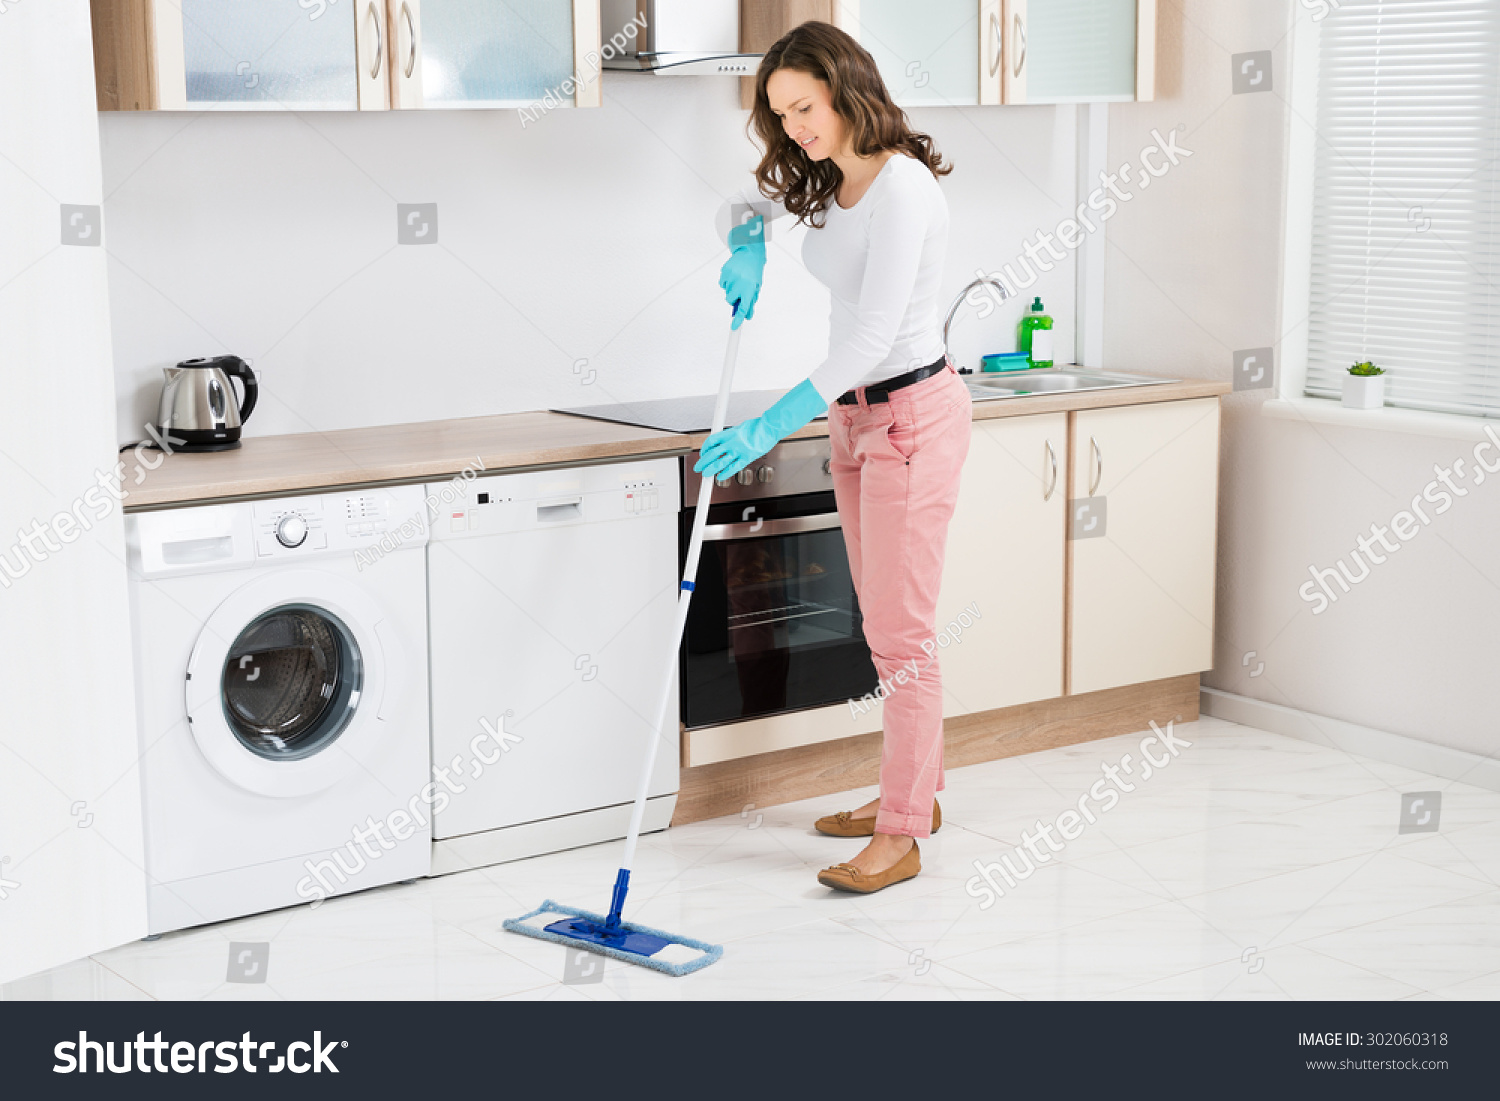 Kitchen Floor Cleaners Happy Woman Cleaning Floor Mop Kitchen Stock Photo 302060318